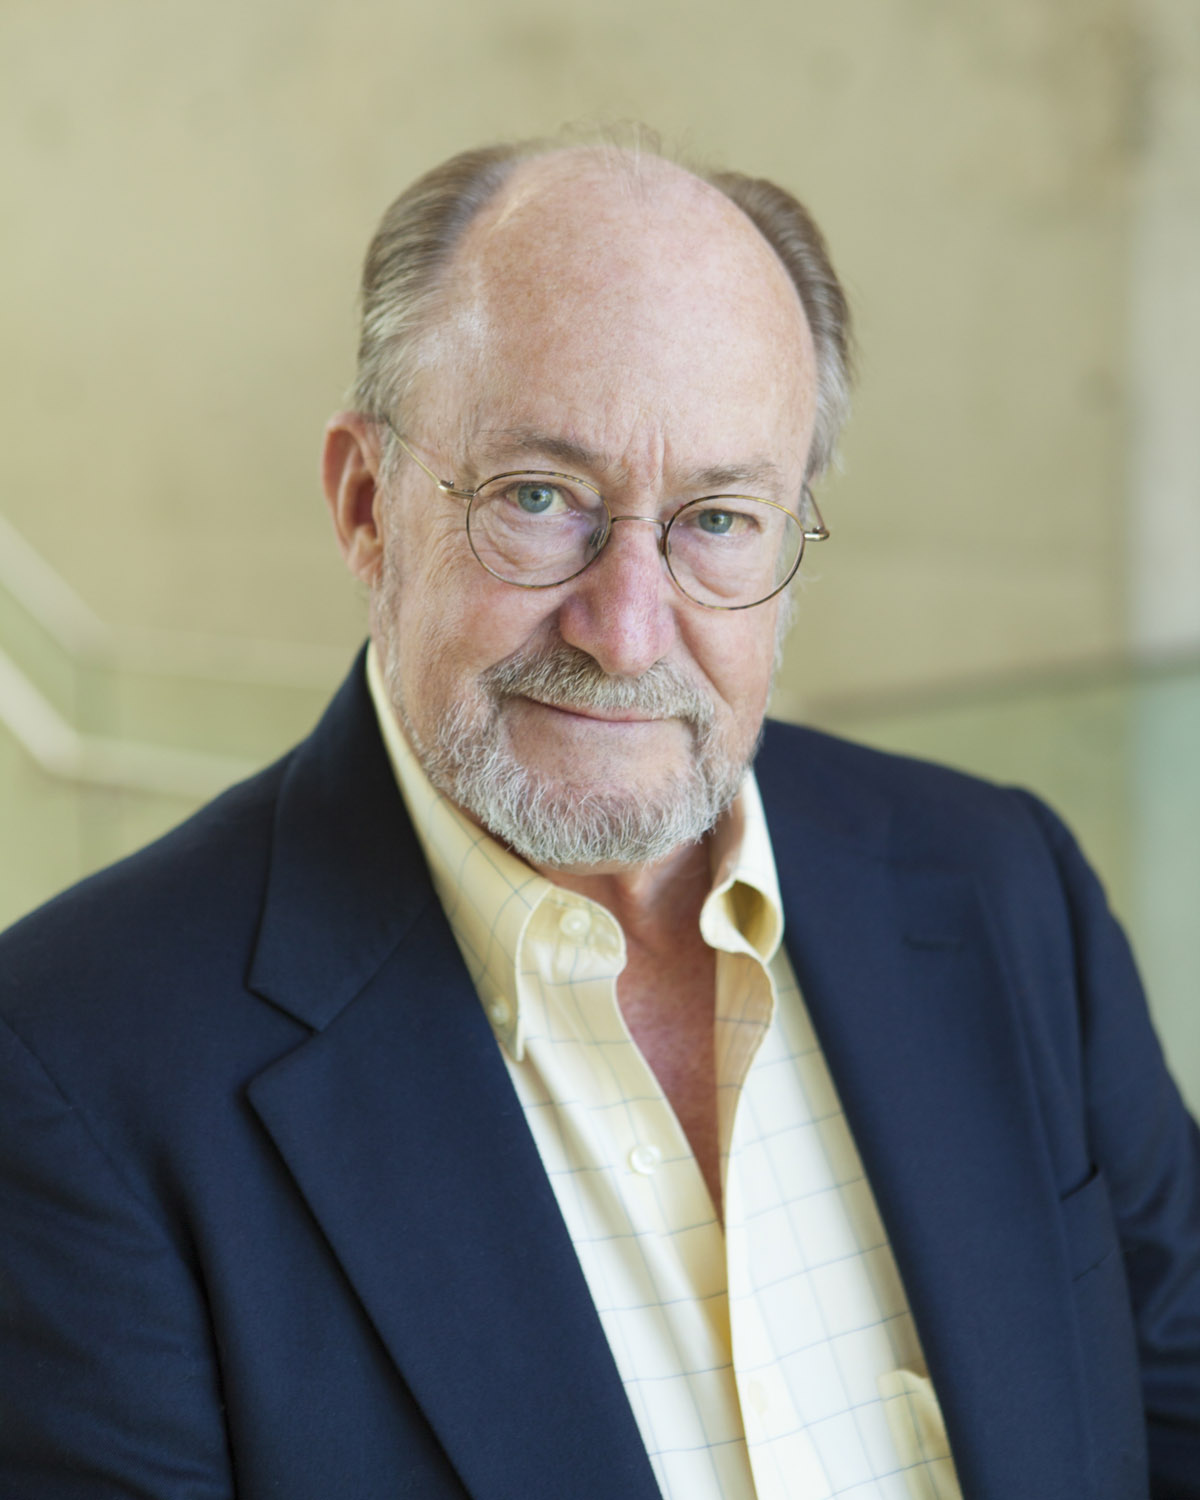 A leader and driving force in modern day applied geography, Bill Derrenbacher has played a significant role in the proliferation of GIS worldwide.